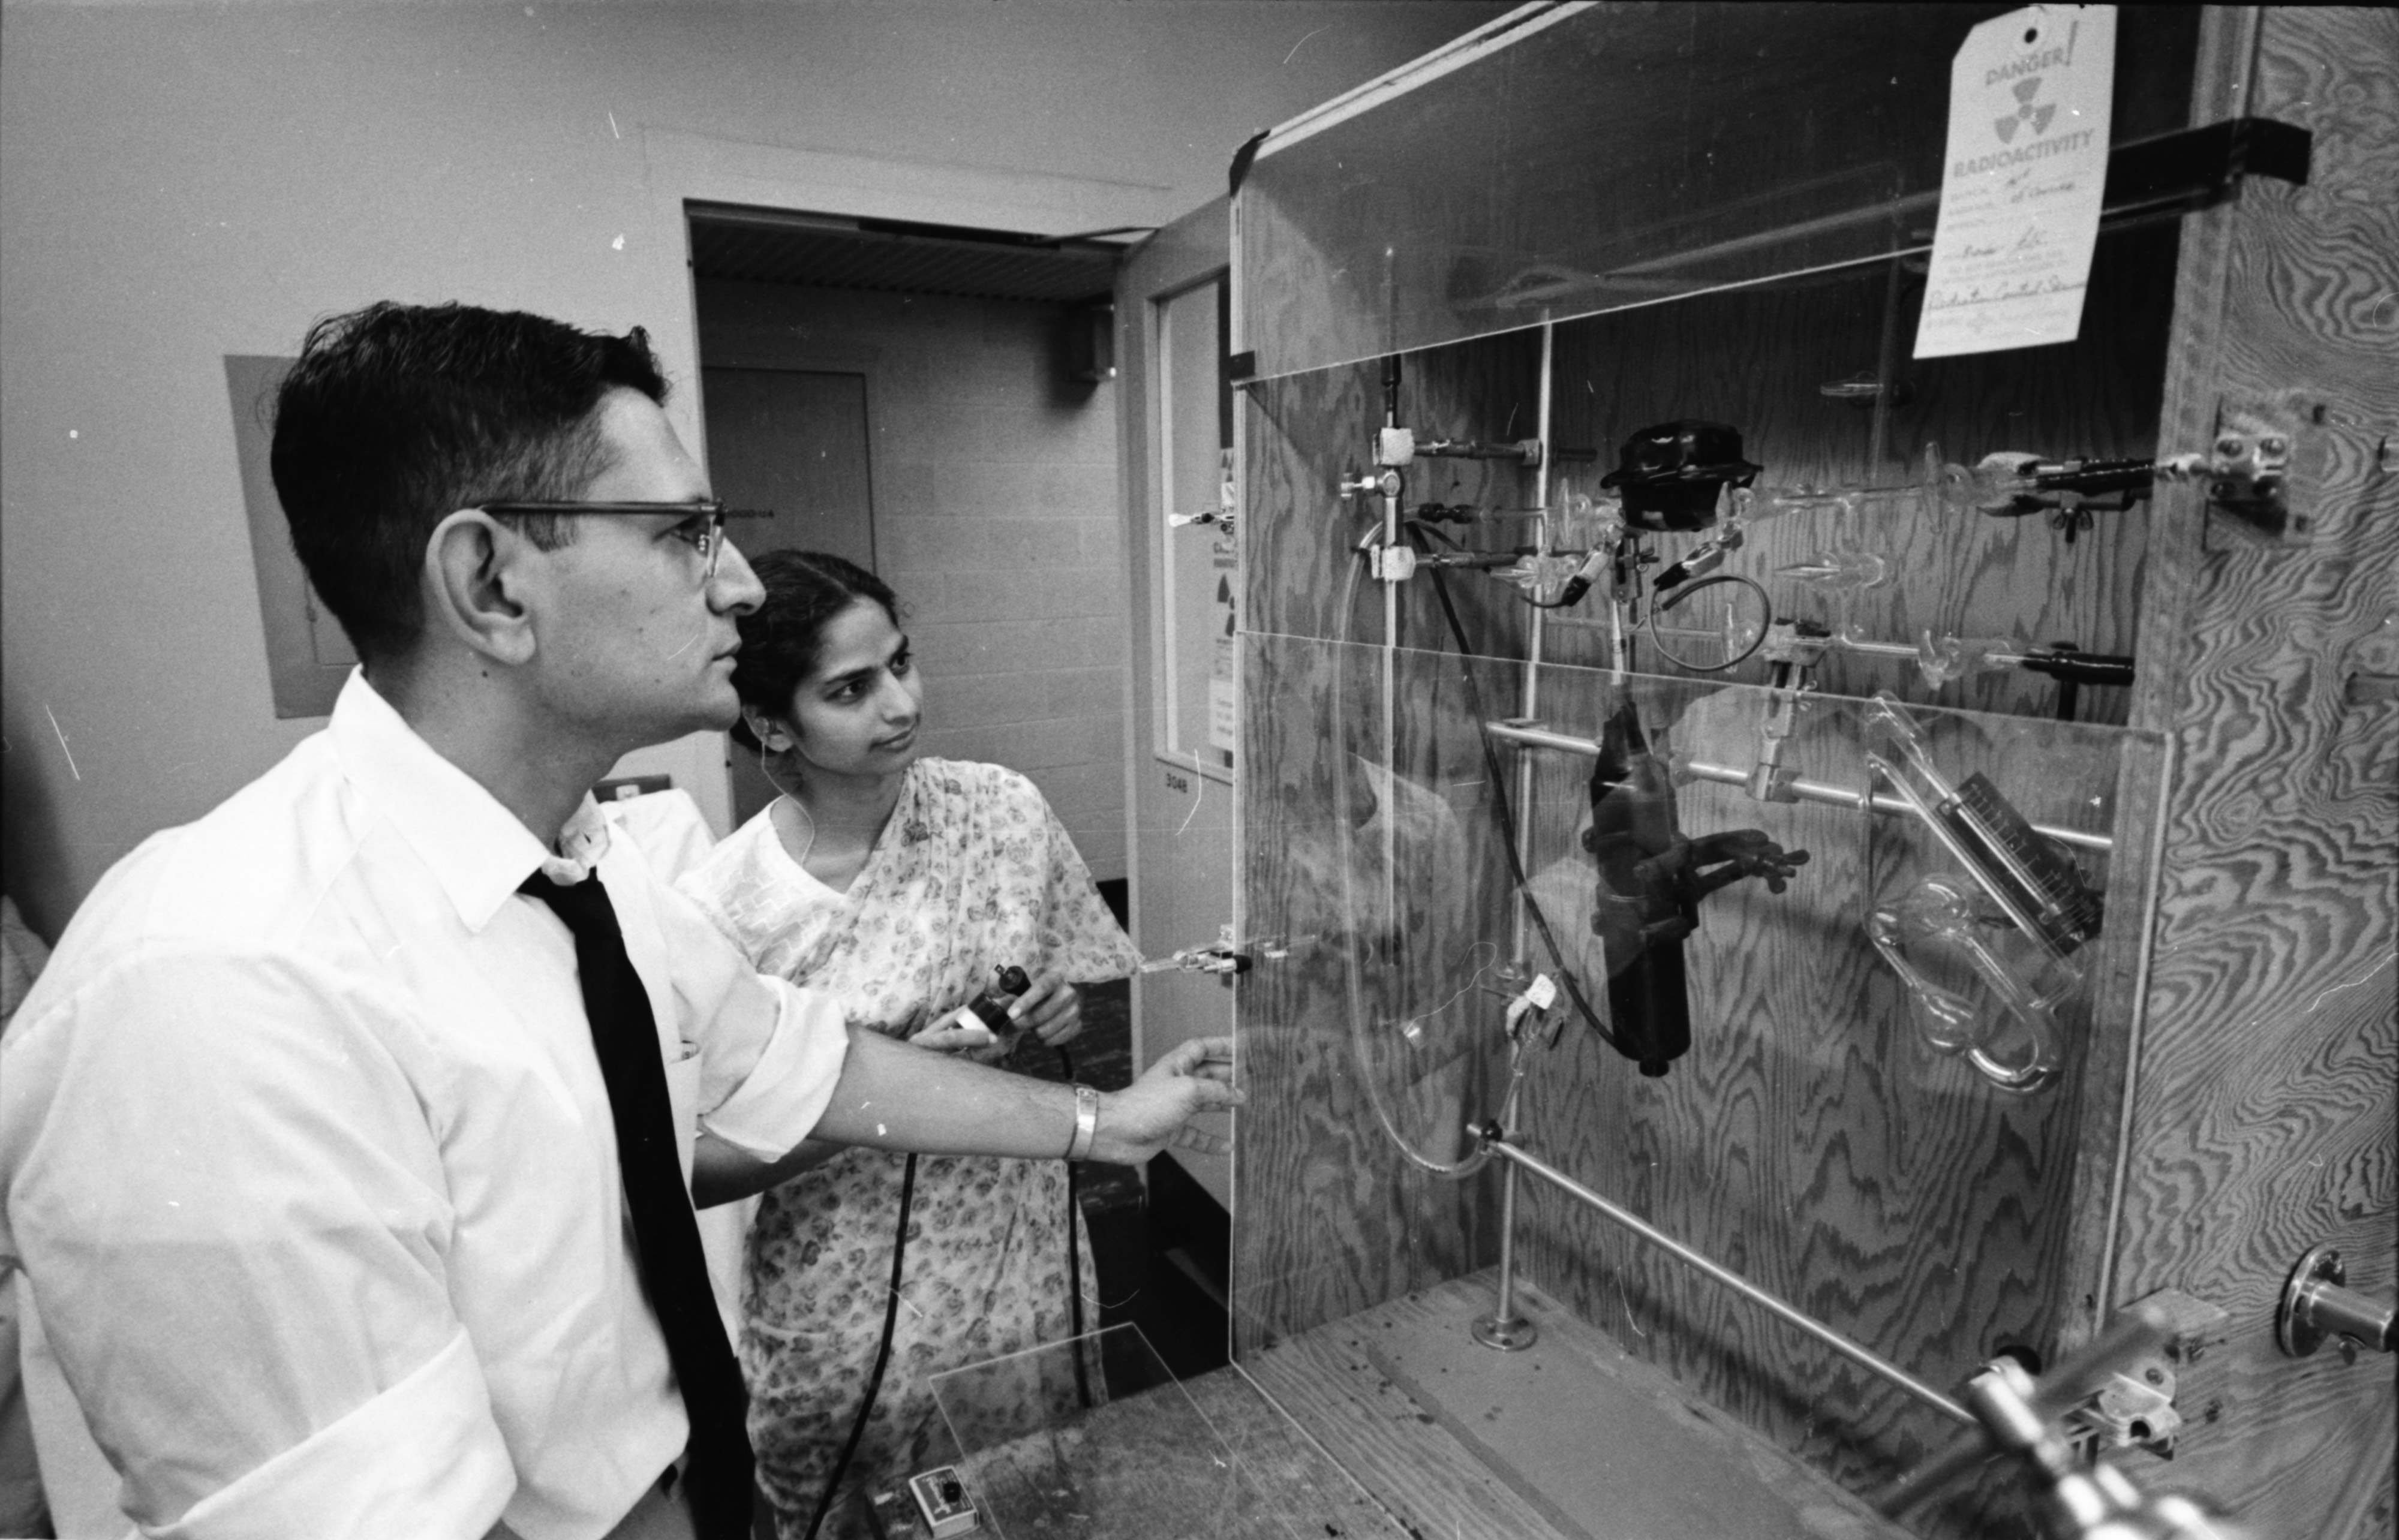 Professor P. C. Rajam and Shanti K. Seth at the Phoenix Memorial Laboratory, August 1961 image